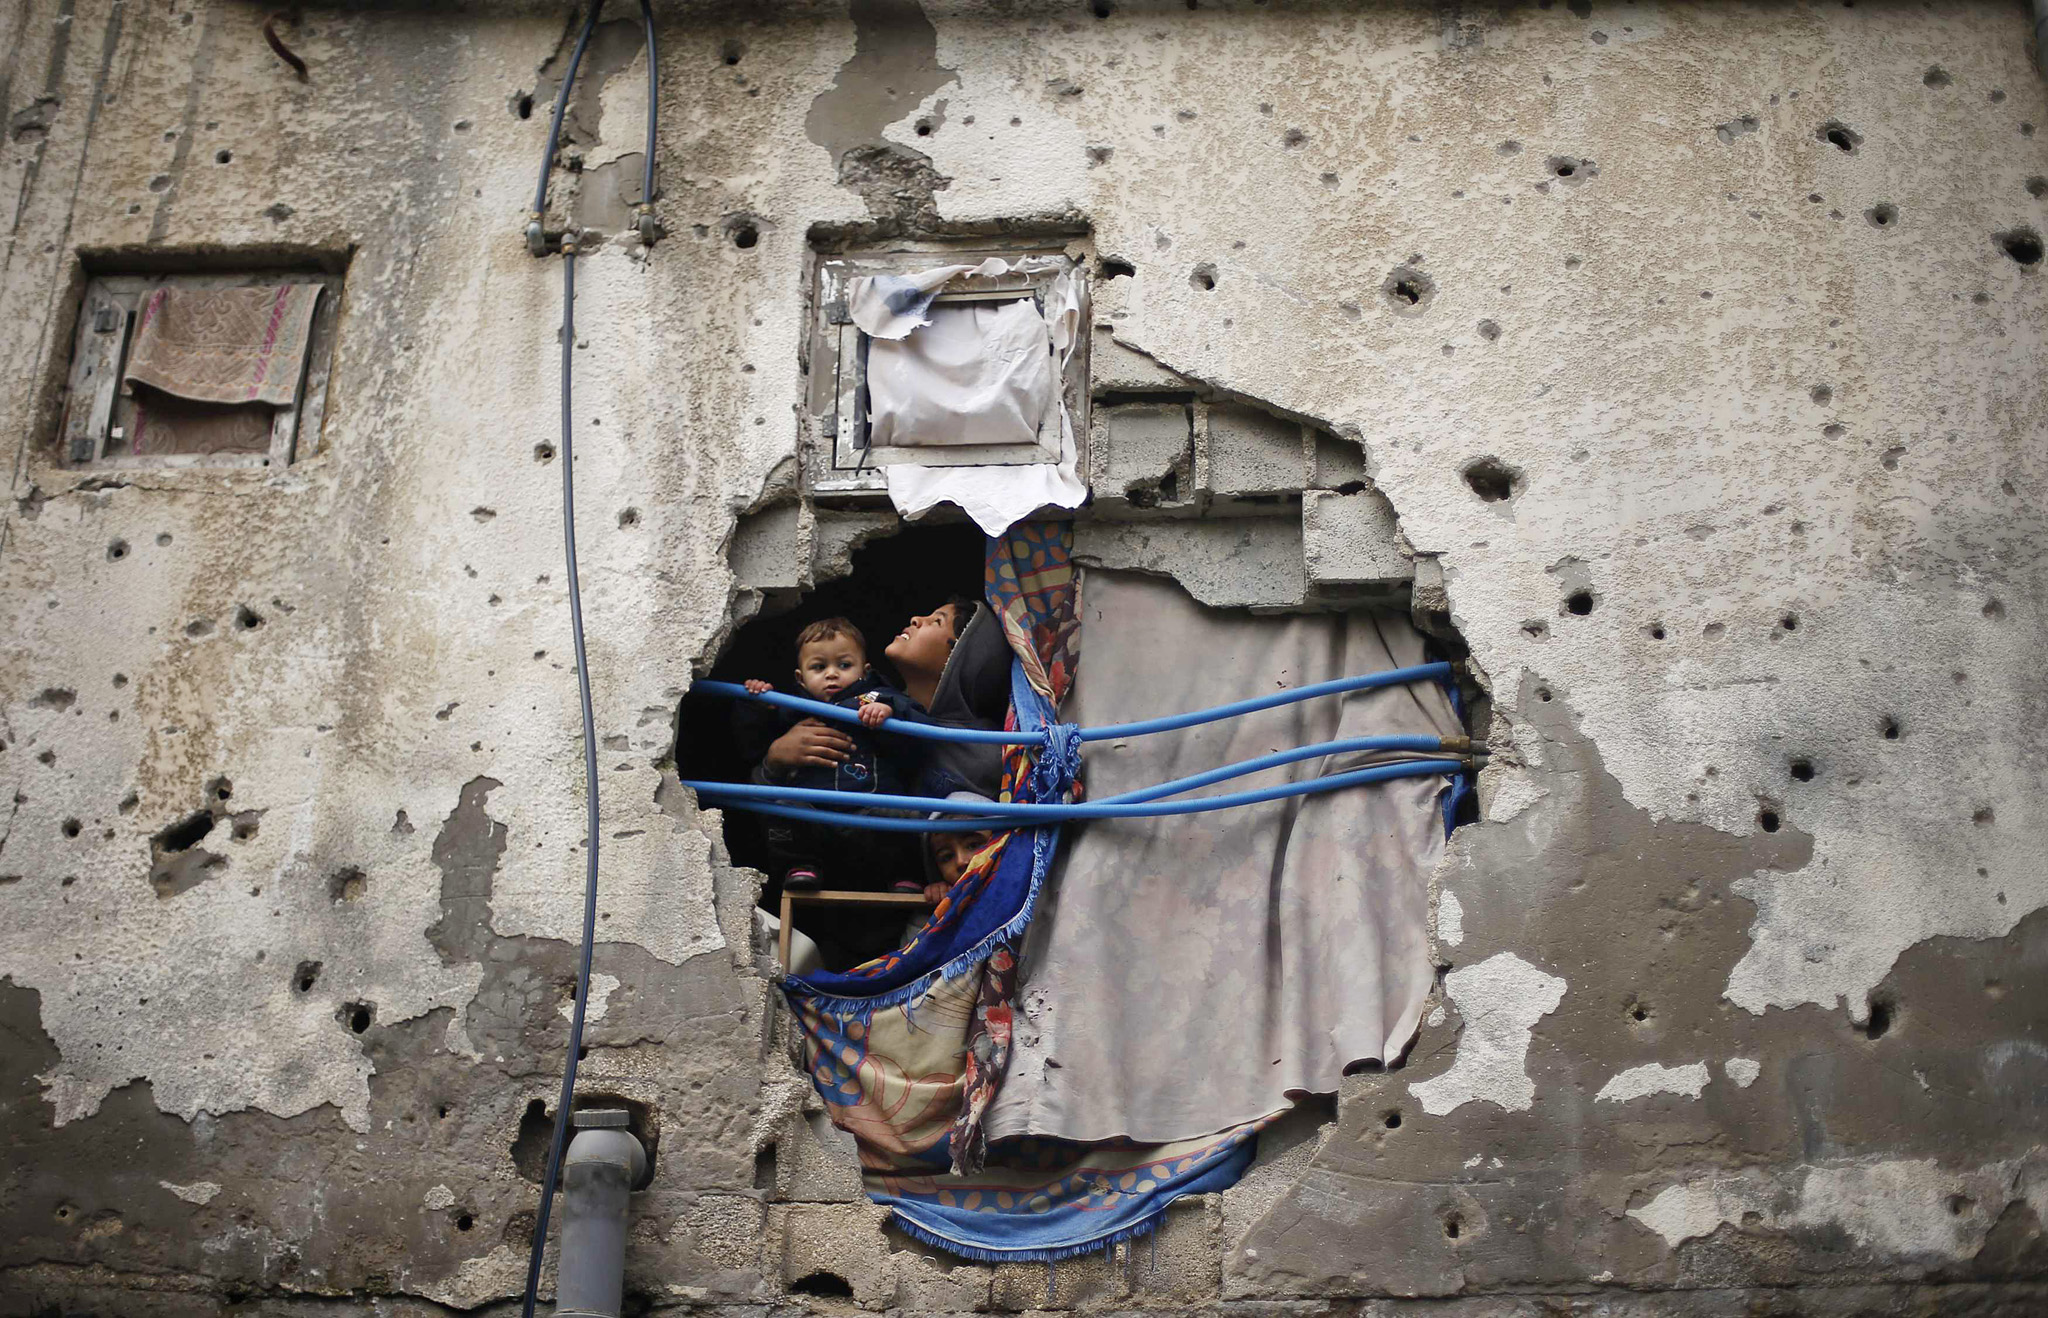 Palestinian children look out through a hole covered with a blanket in their family house, that witnesses said was damaged by Israeli shelling during a 50-day war last summer, in the east of Gaza City January 7, 2015. Heavy rains and near-freezing temperatures in the approaching storm threatened to deepen the misery in the Gaza Strip, where streets are still strewn with wreckage from a 50-day war with Israel last summer, thousands live in U.N. shelters and damaged homes and the power is on only six hours a day.  REUTERS/Suhaib Salem (GAZA - Tags: POLITICS CIVIL UNREST TPX IMAGES OF THE DAY)